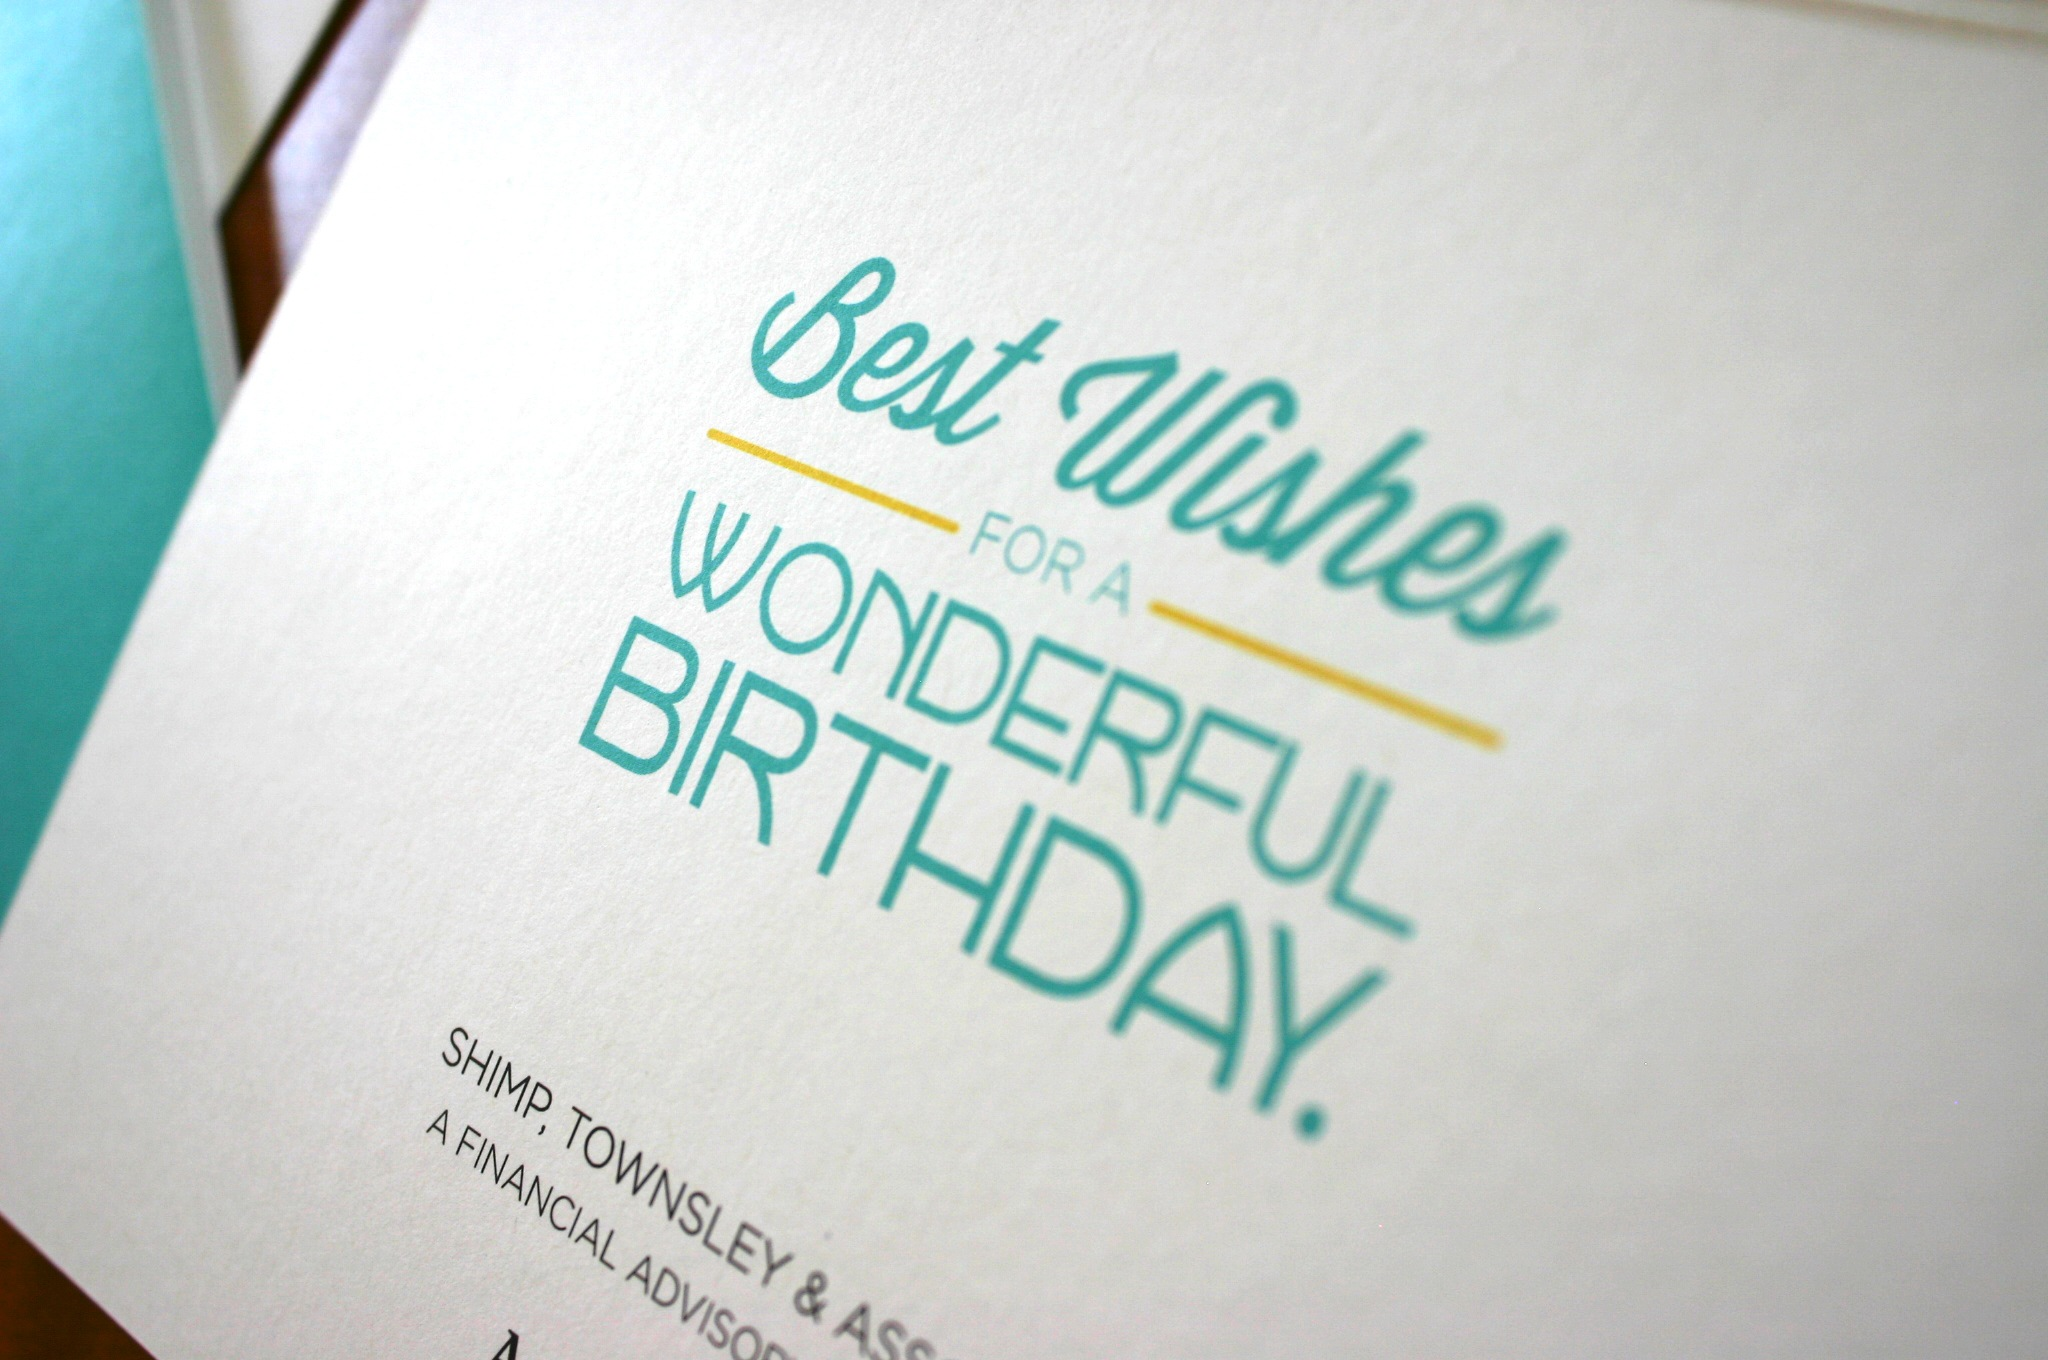 business birthday cards ; simple-business-birthday-card-design-company-birthday-cards-for-employees-company-birthday-cards-for-employees